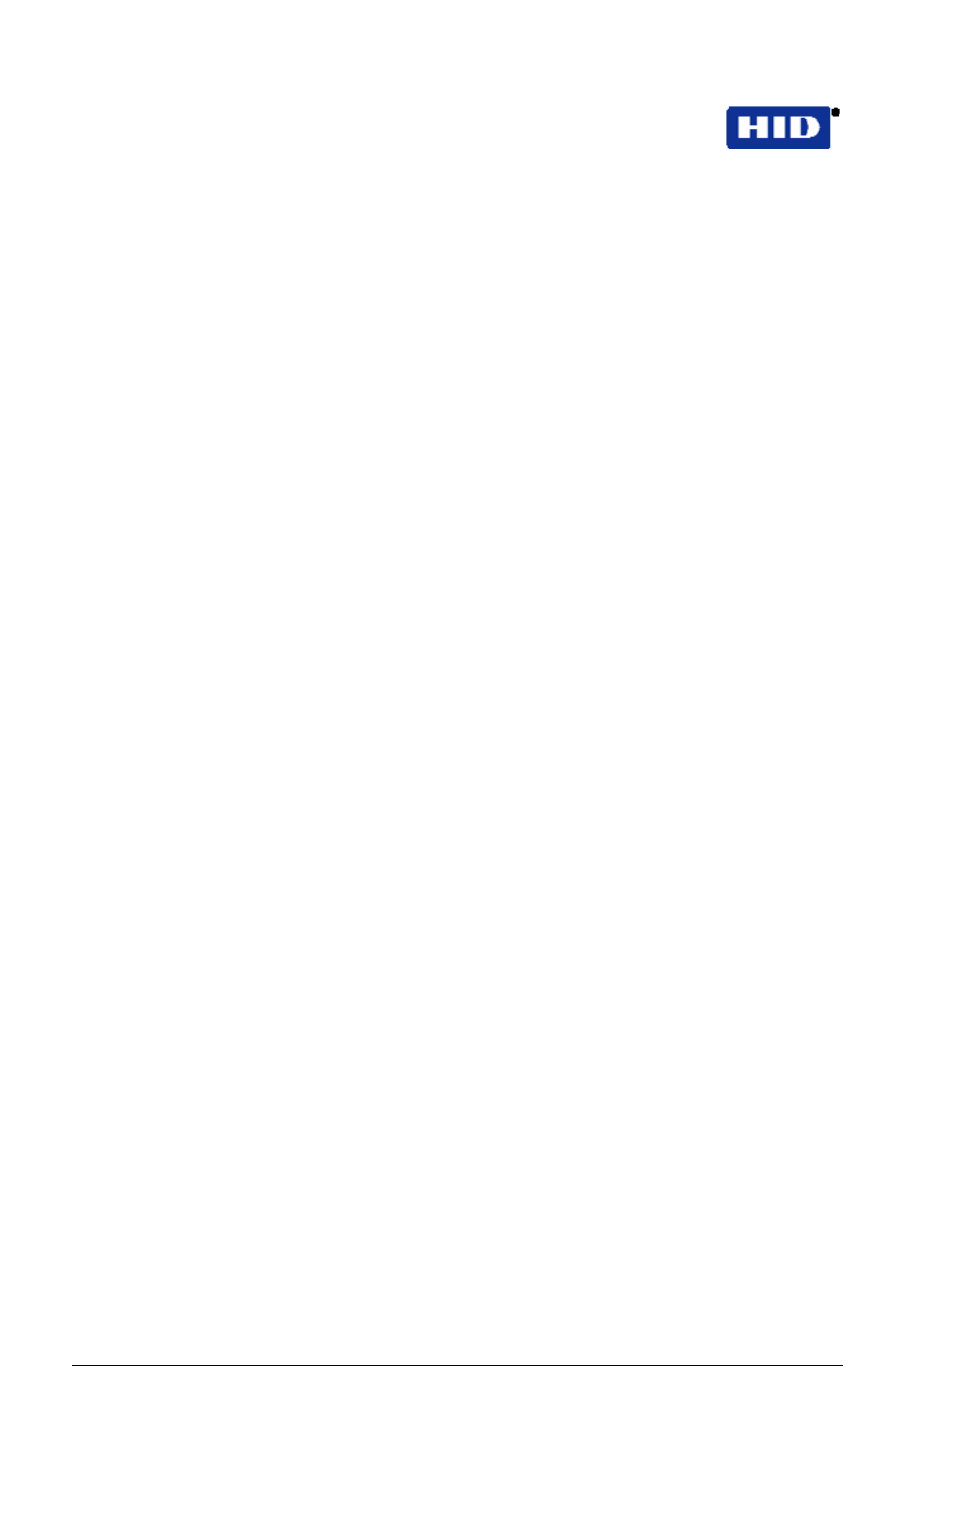 8 deleting users, 9 block delete users | HID EntryProx